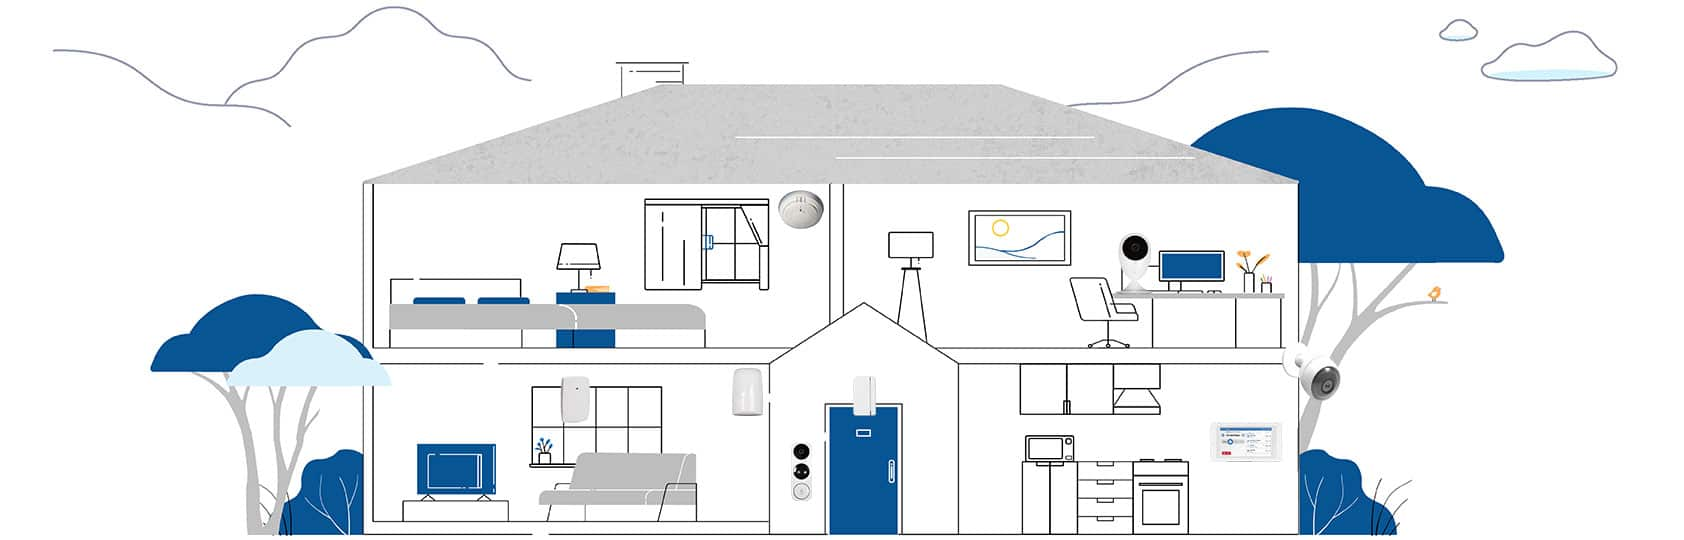 diagram of a home security system